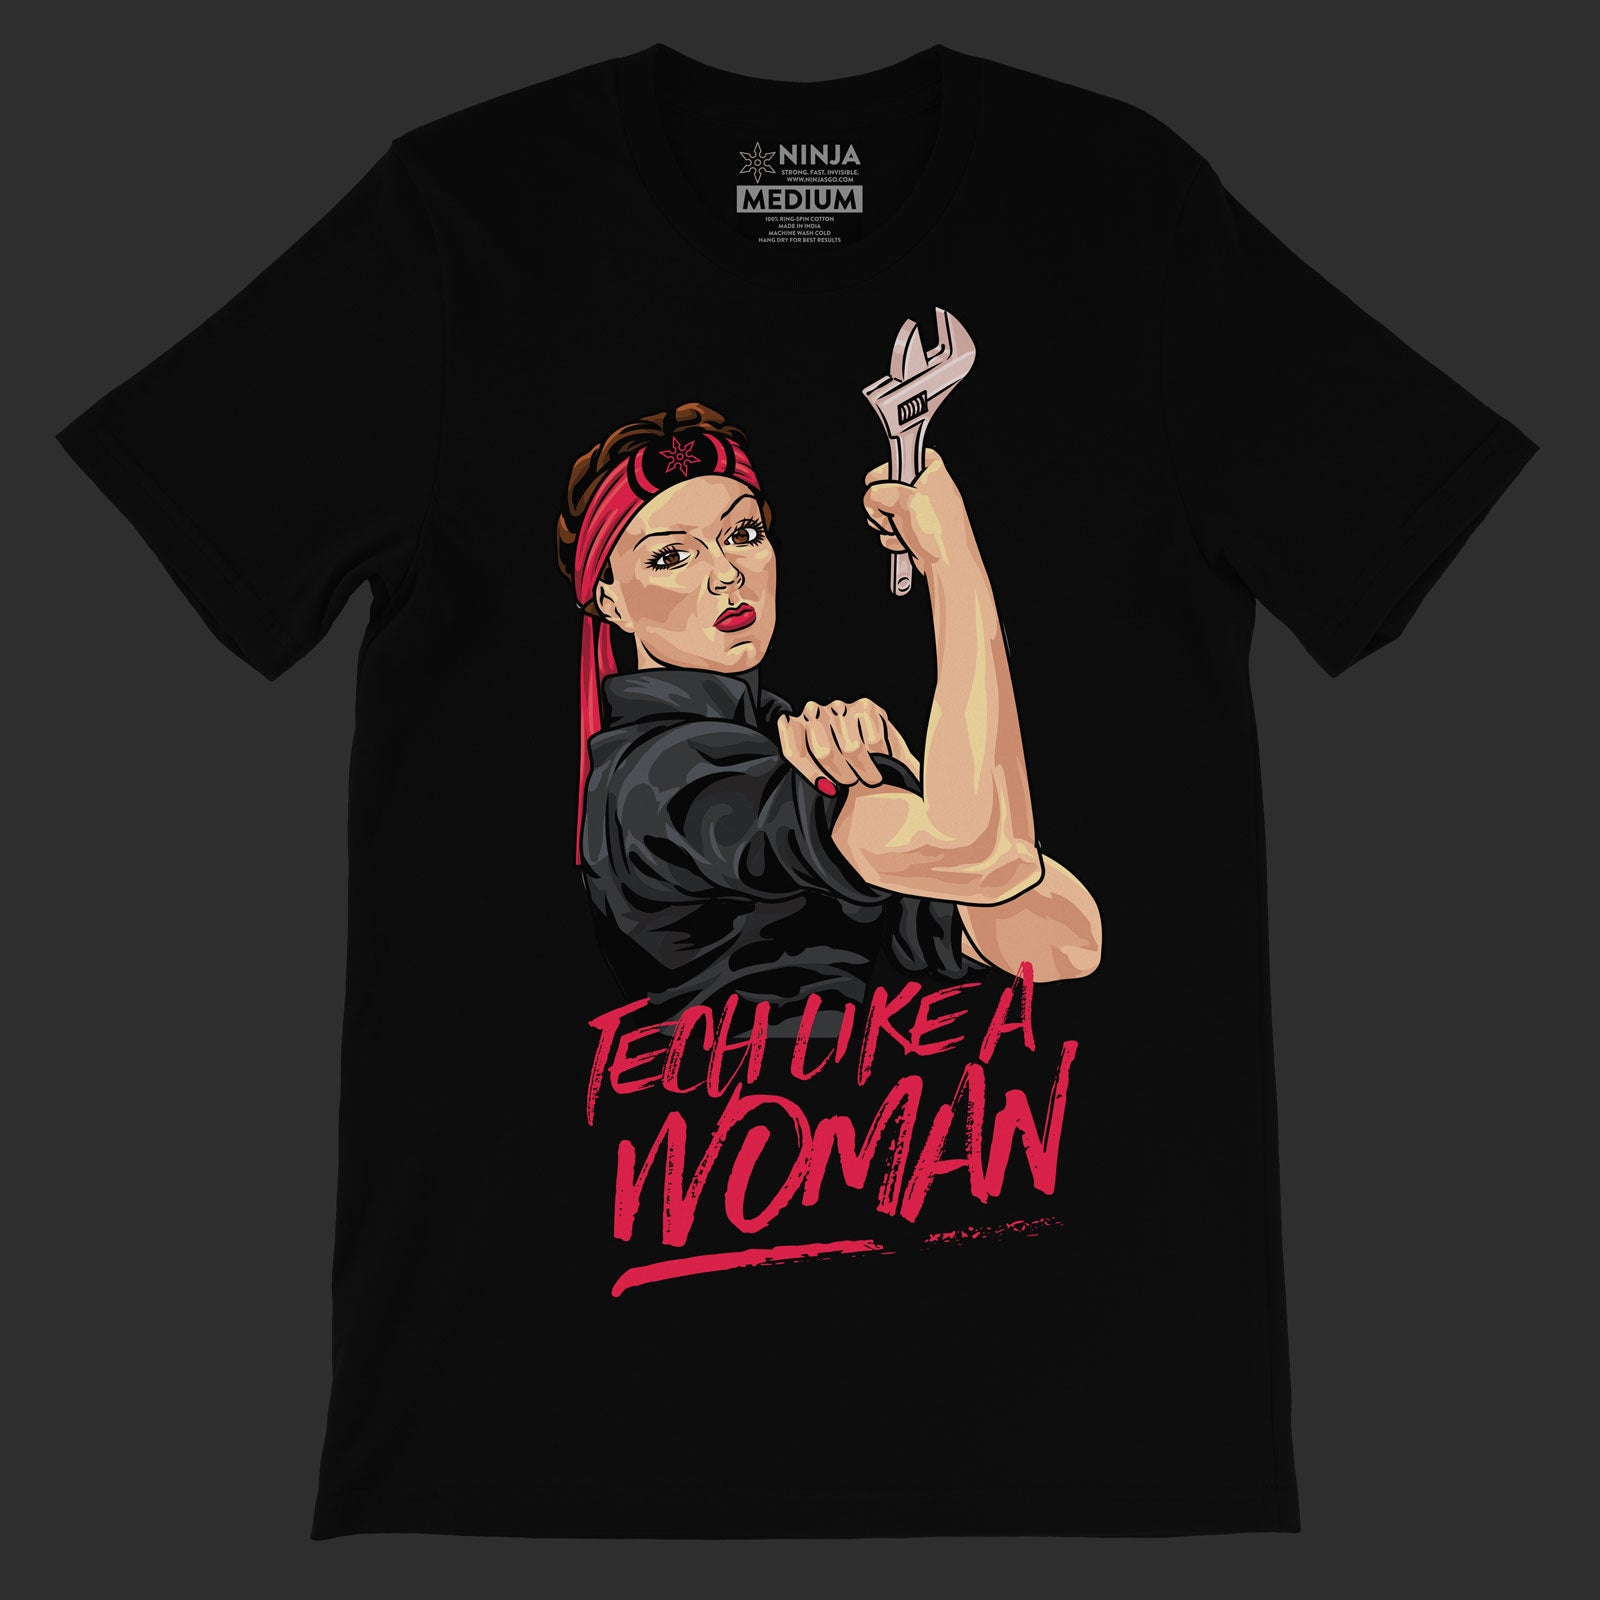 Tech Like a Woman Tee